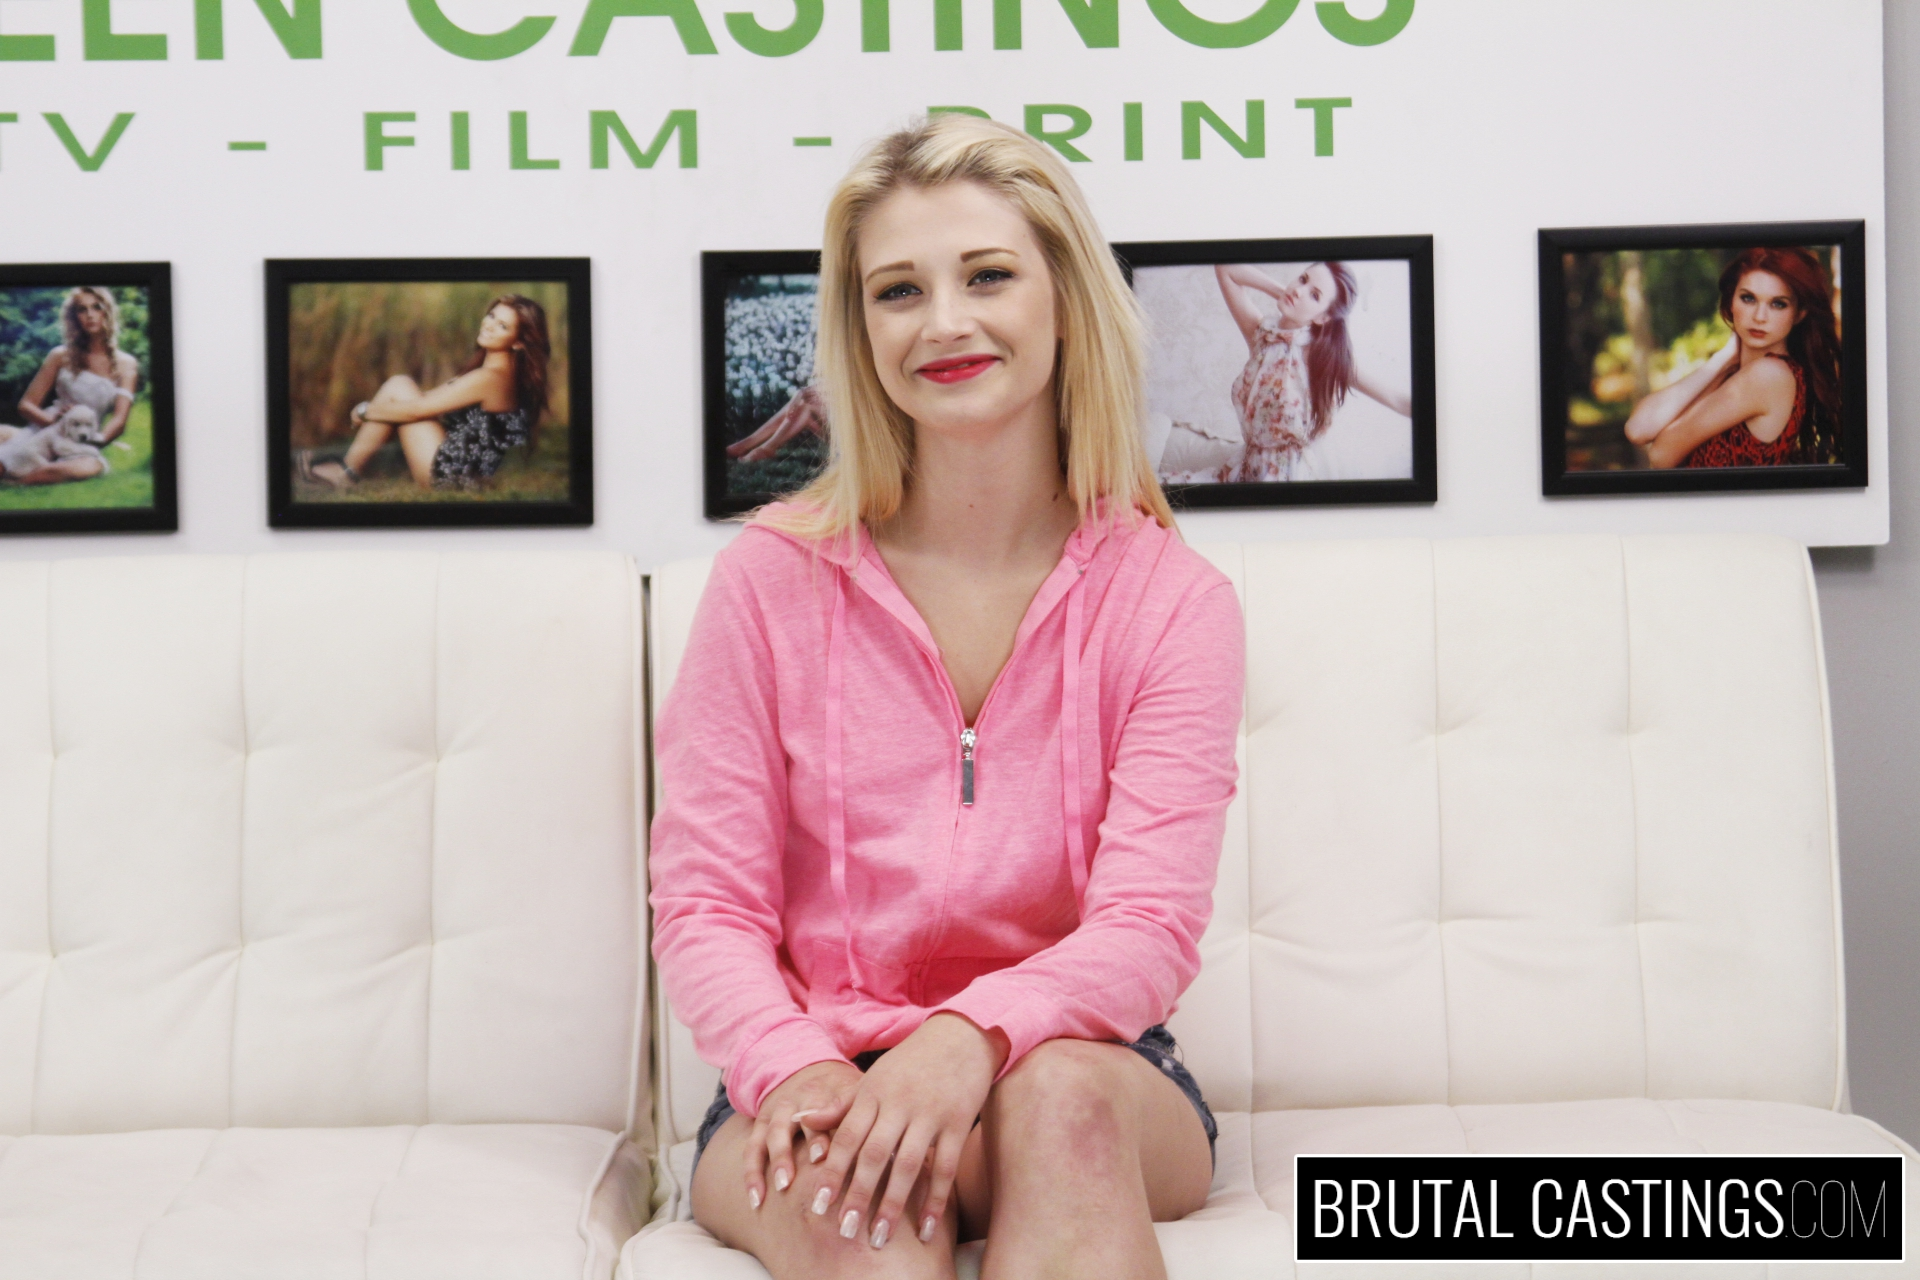 Bdsm casting couch with aubrey gold. Aubrey Gold, a elegant Southern blonde, is ready to leave her small town behind for a modeling career in a big city! She sent her audition video to Teen Castings, a big agency in Miami, and gets a call back. She'll do anything to get what she wants. She'll even endure BDSM, domination, rope bondage, deepthroat bj, fingering, squirting, spanking, slapping and rough sex.